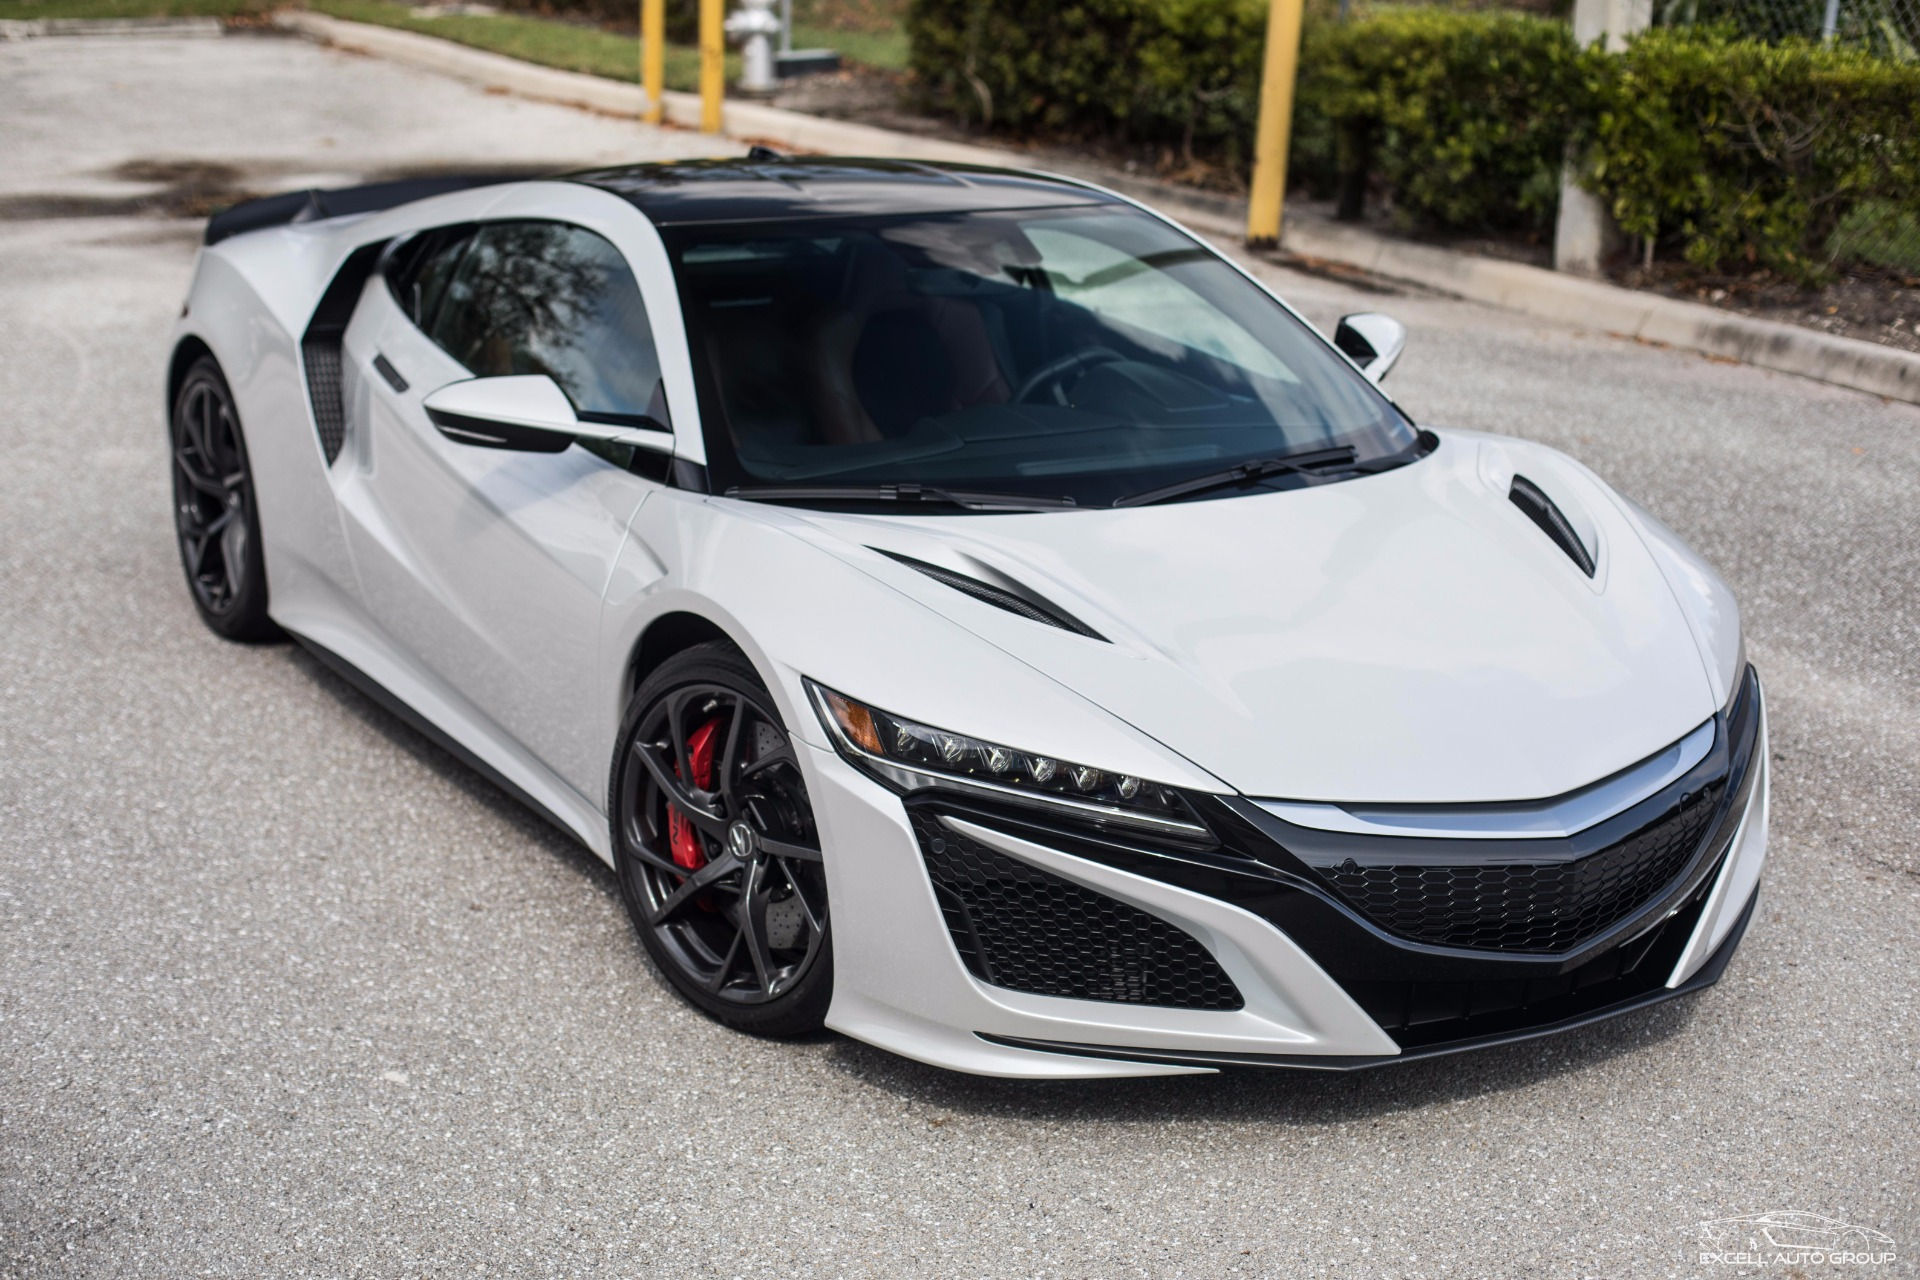 Casino White Acura NSX For Sale In South Florida ...